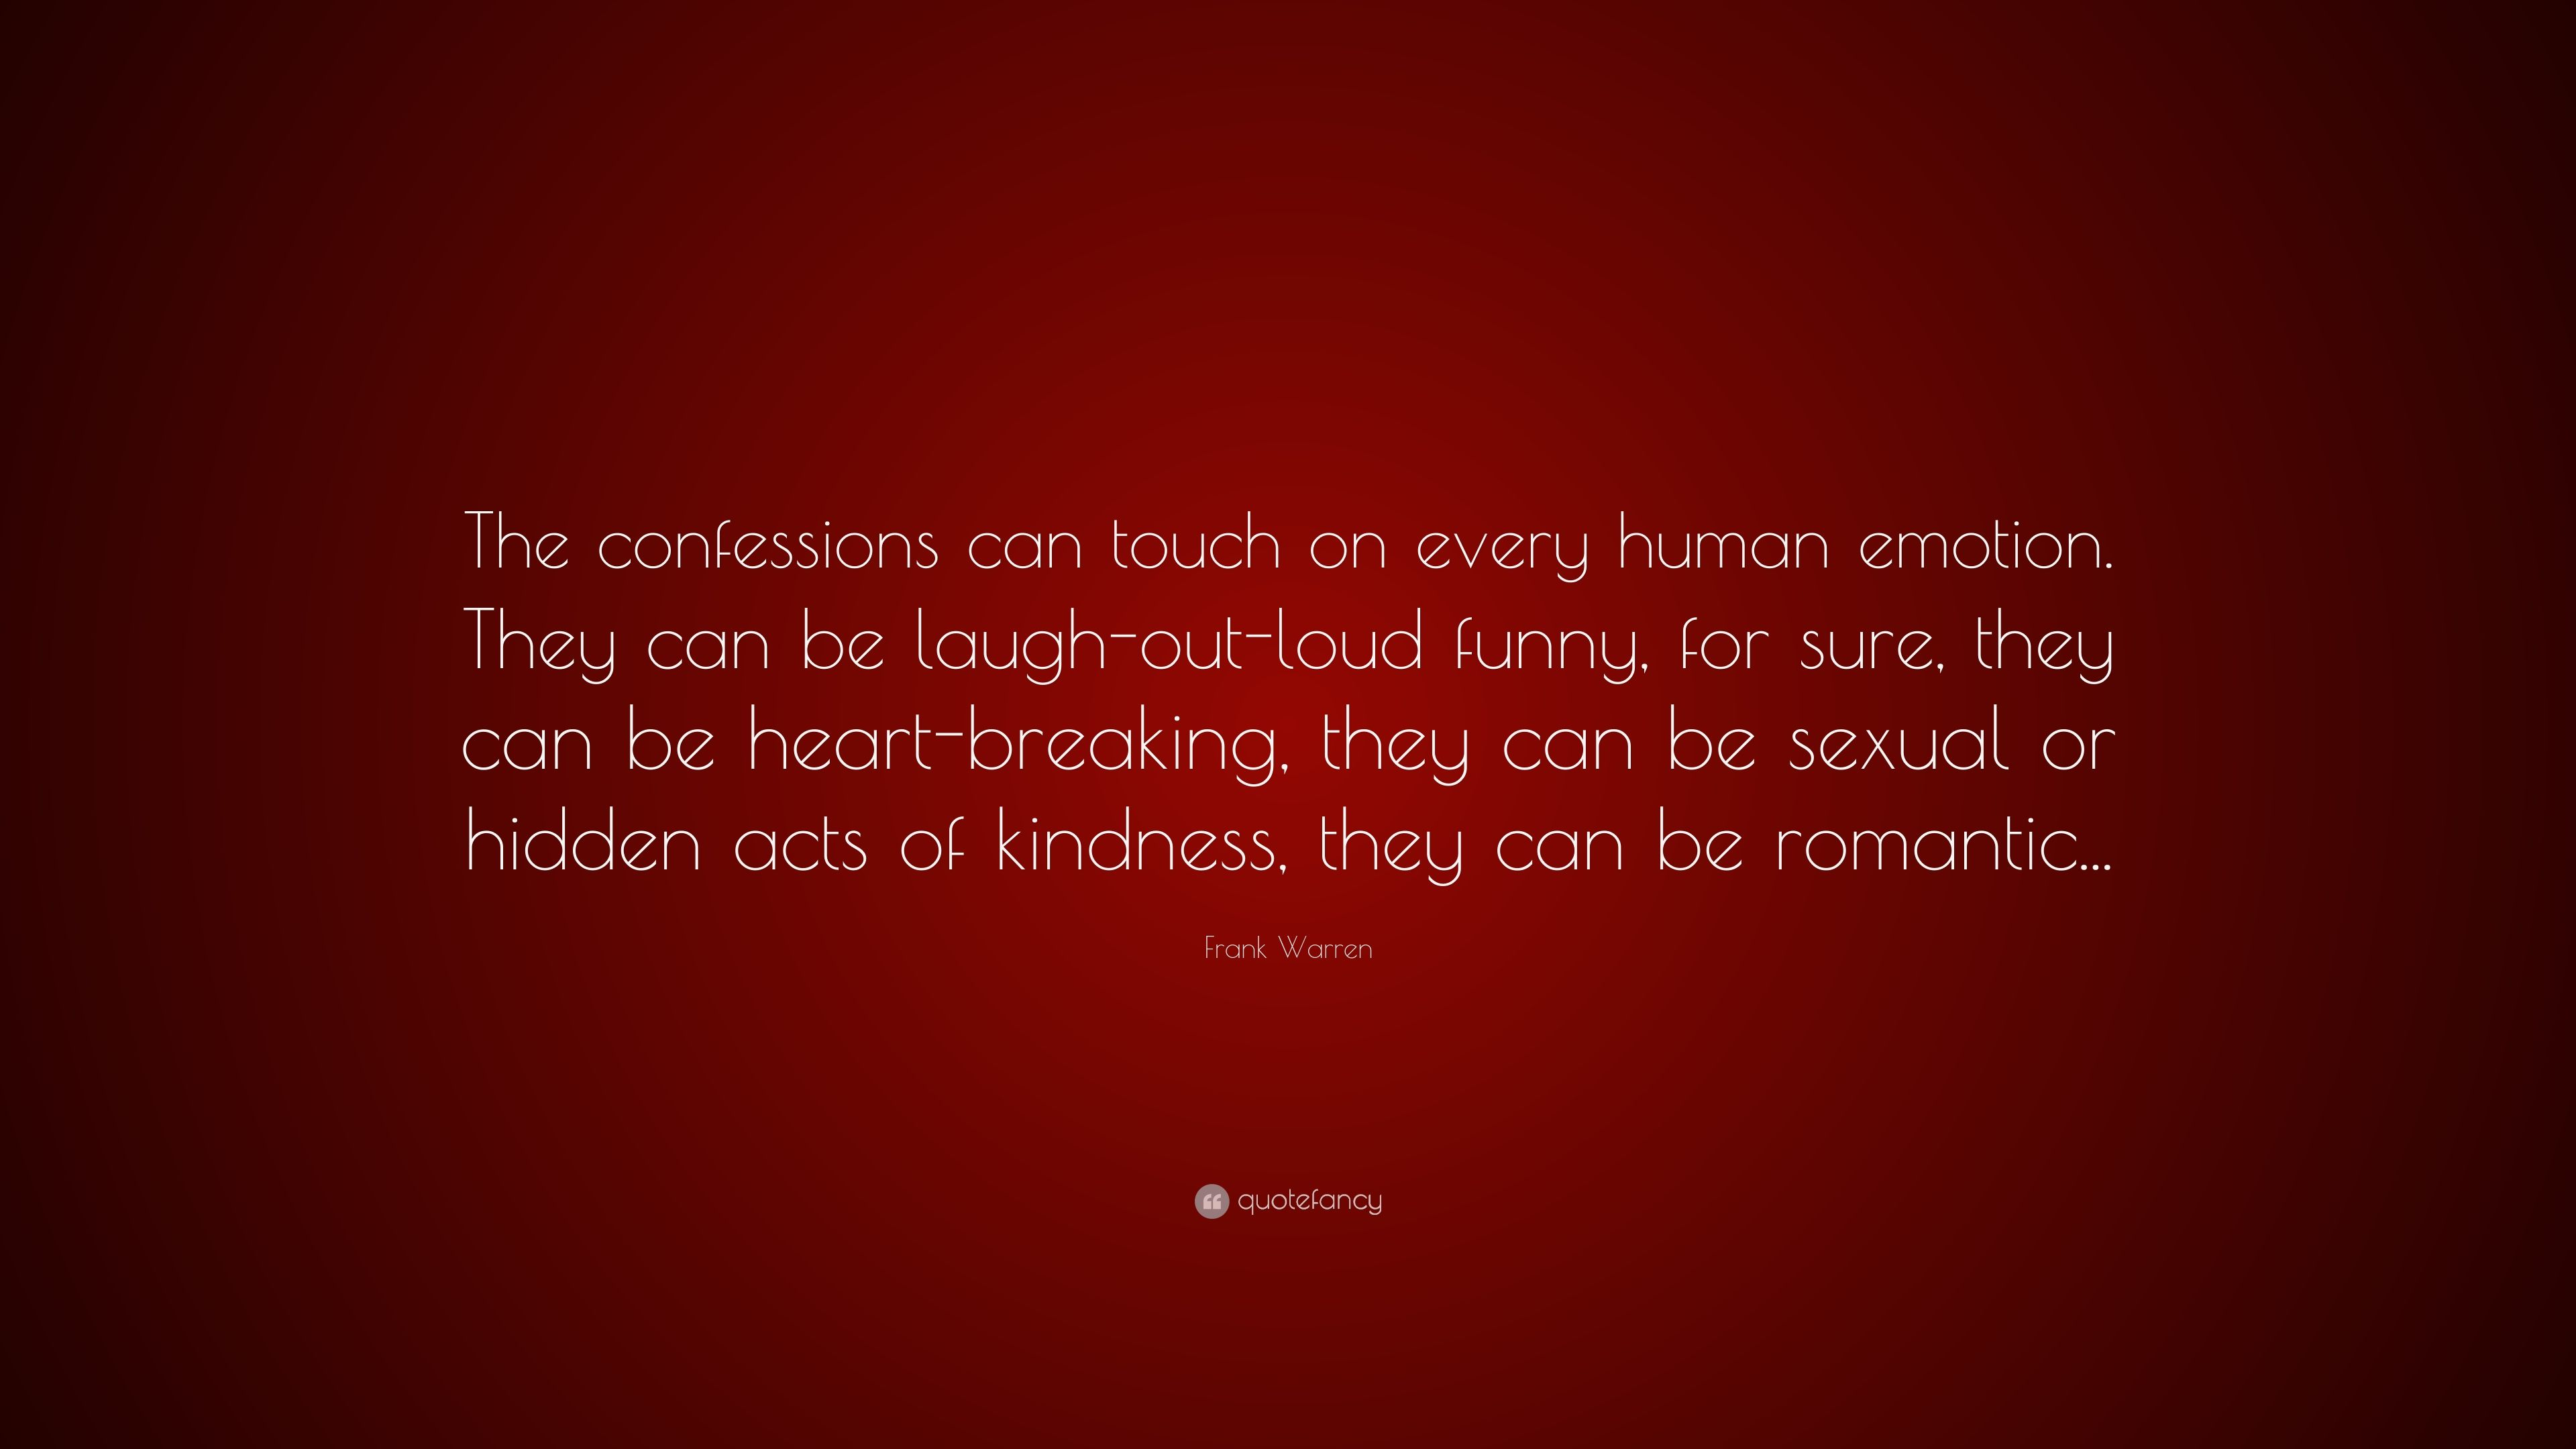 Frank Warren Quote The Confessions Can Touch On Every Human Emotion They